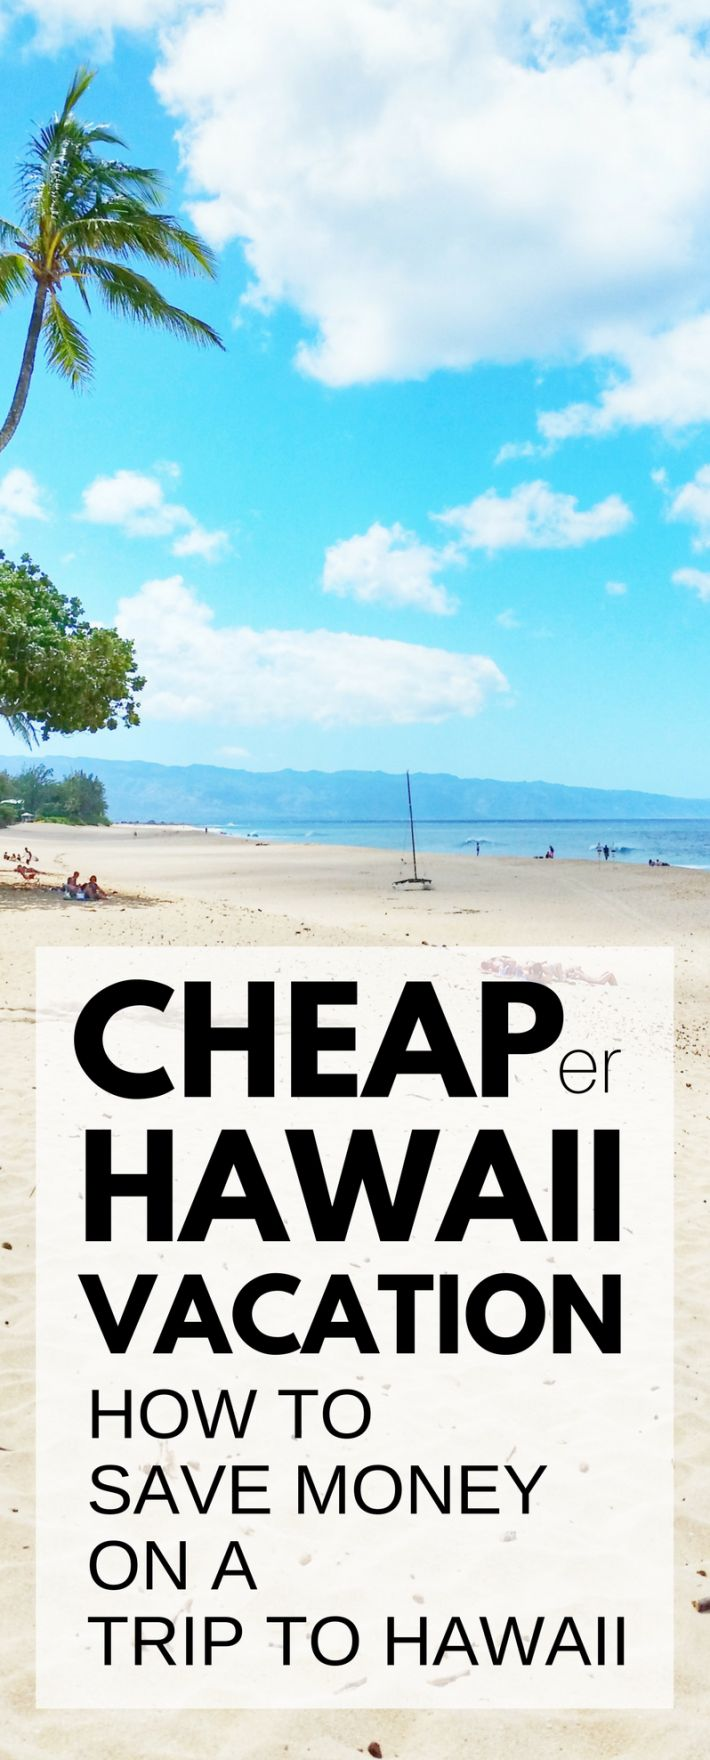 Travel tips for a cheap Hawaii vacation. How to save money on a trip to Hawaii. Things to do on a budget in Oahu, Maui, Kauai, Big Island. Beaches, snorkeling, hiking! What you pack, wear can add costs for Hawaii packing list, but  cheap (er) flights, hotels (airbnb vacation rentals), food, free activities. USA bucket list destination with Waikiki, North Shore! Budget travel tips. Honeymoon destinations for two. Dream beach vacations. #hawaii #oahu #kauai #maui #bigisland #HawaiiHoliday